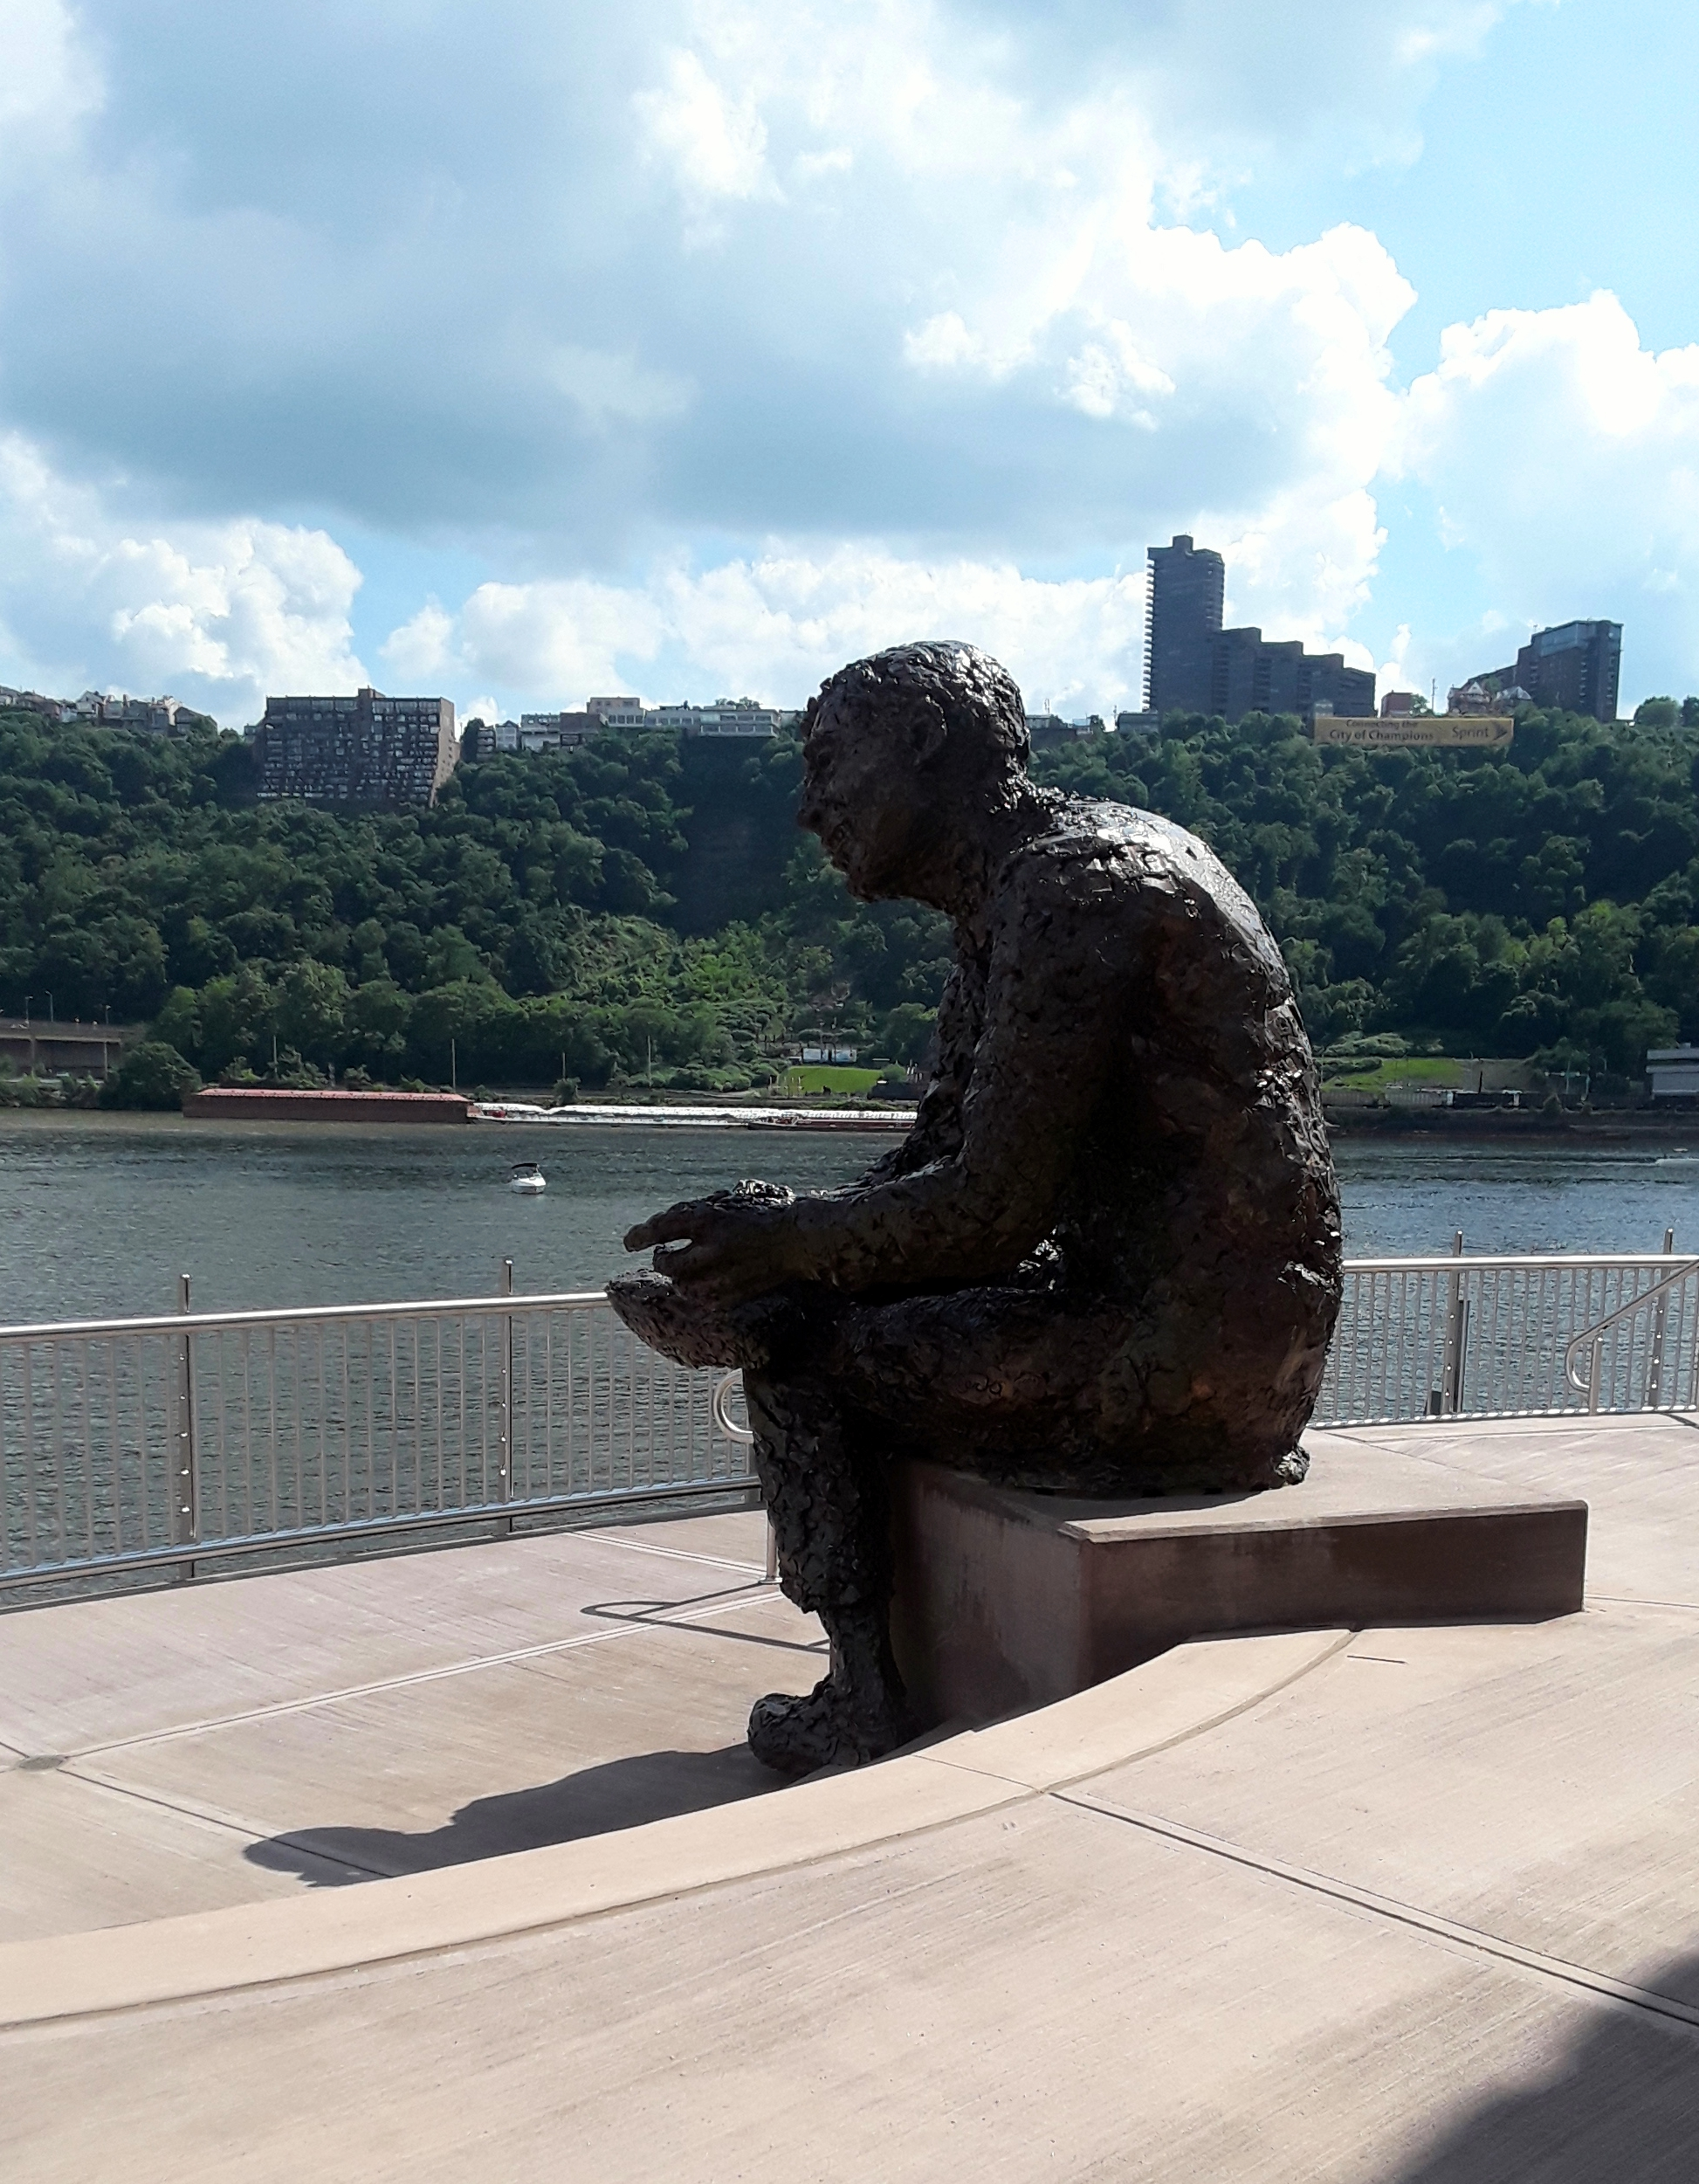 Pittsburgh's Monument to Mr. Rogers: Won't You Be My Neighbor?